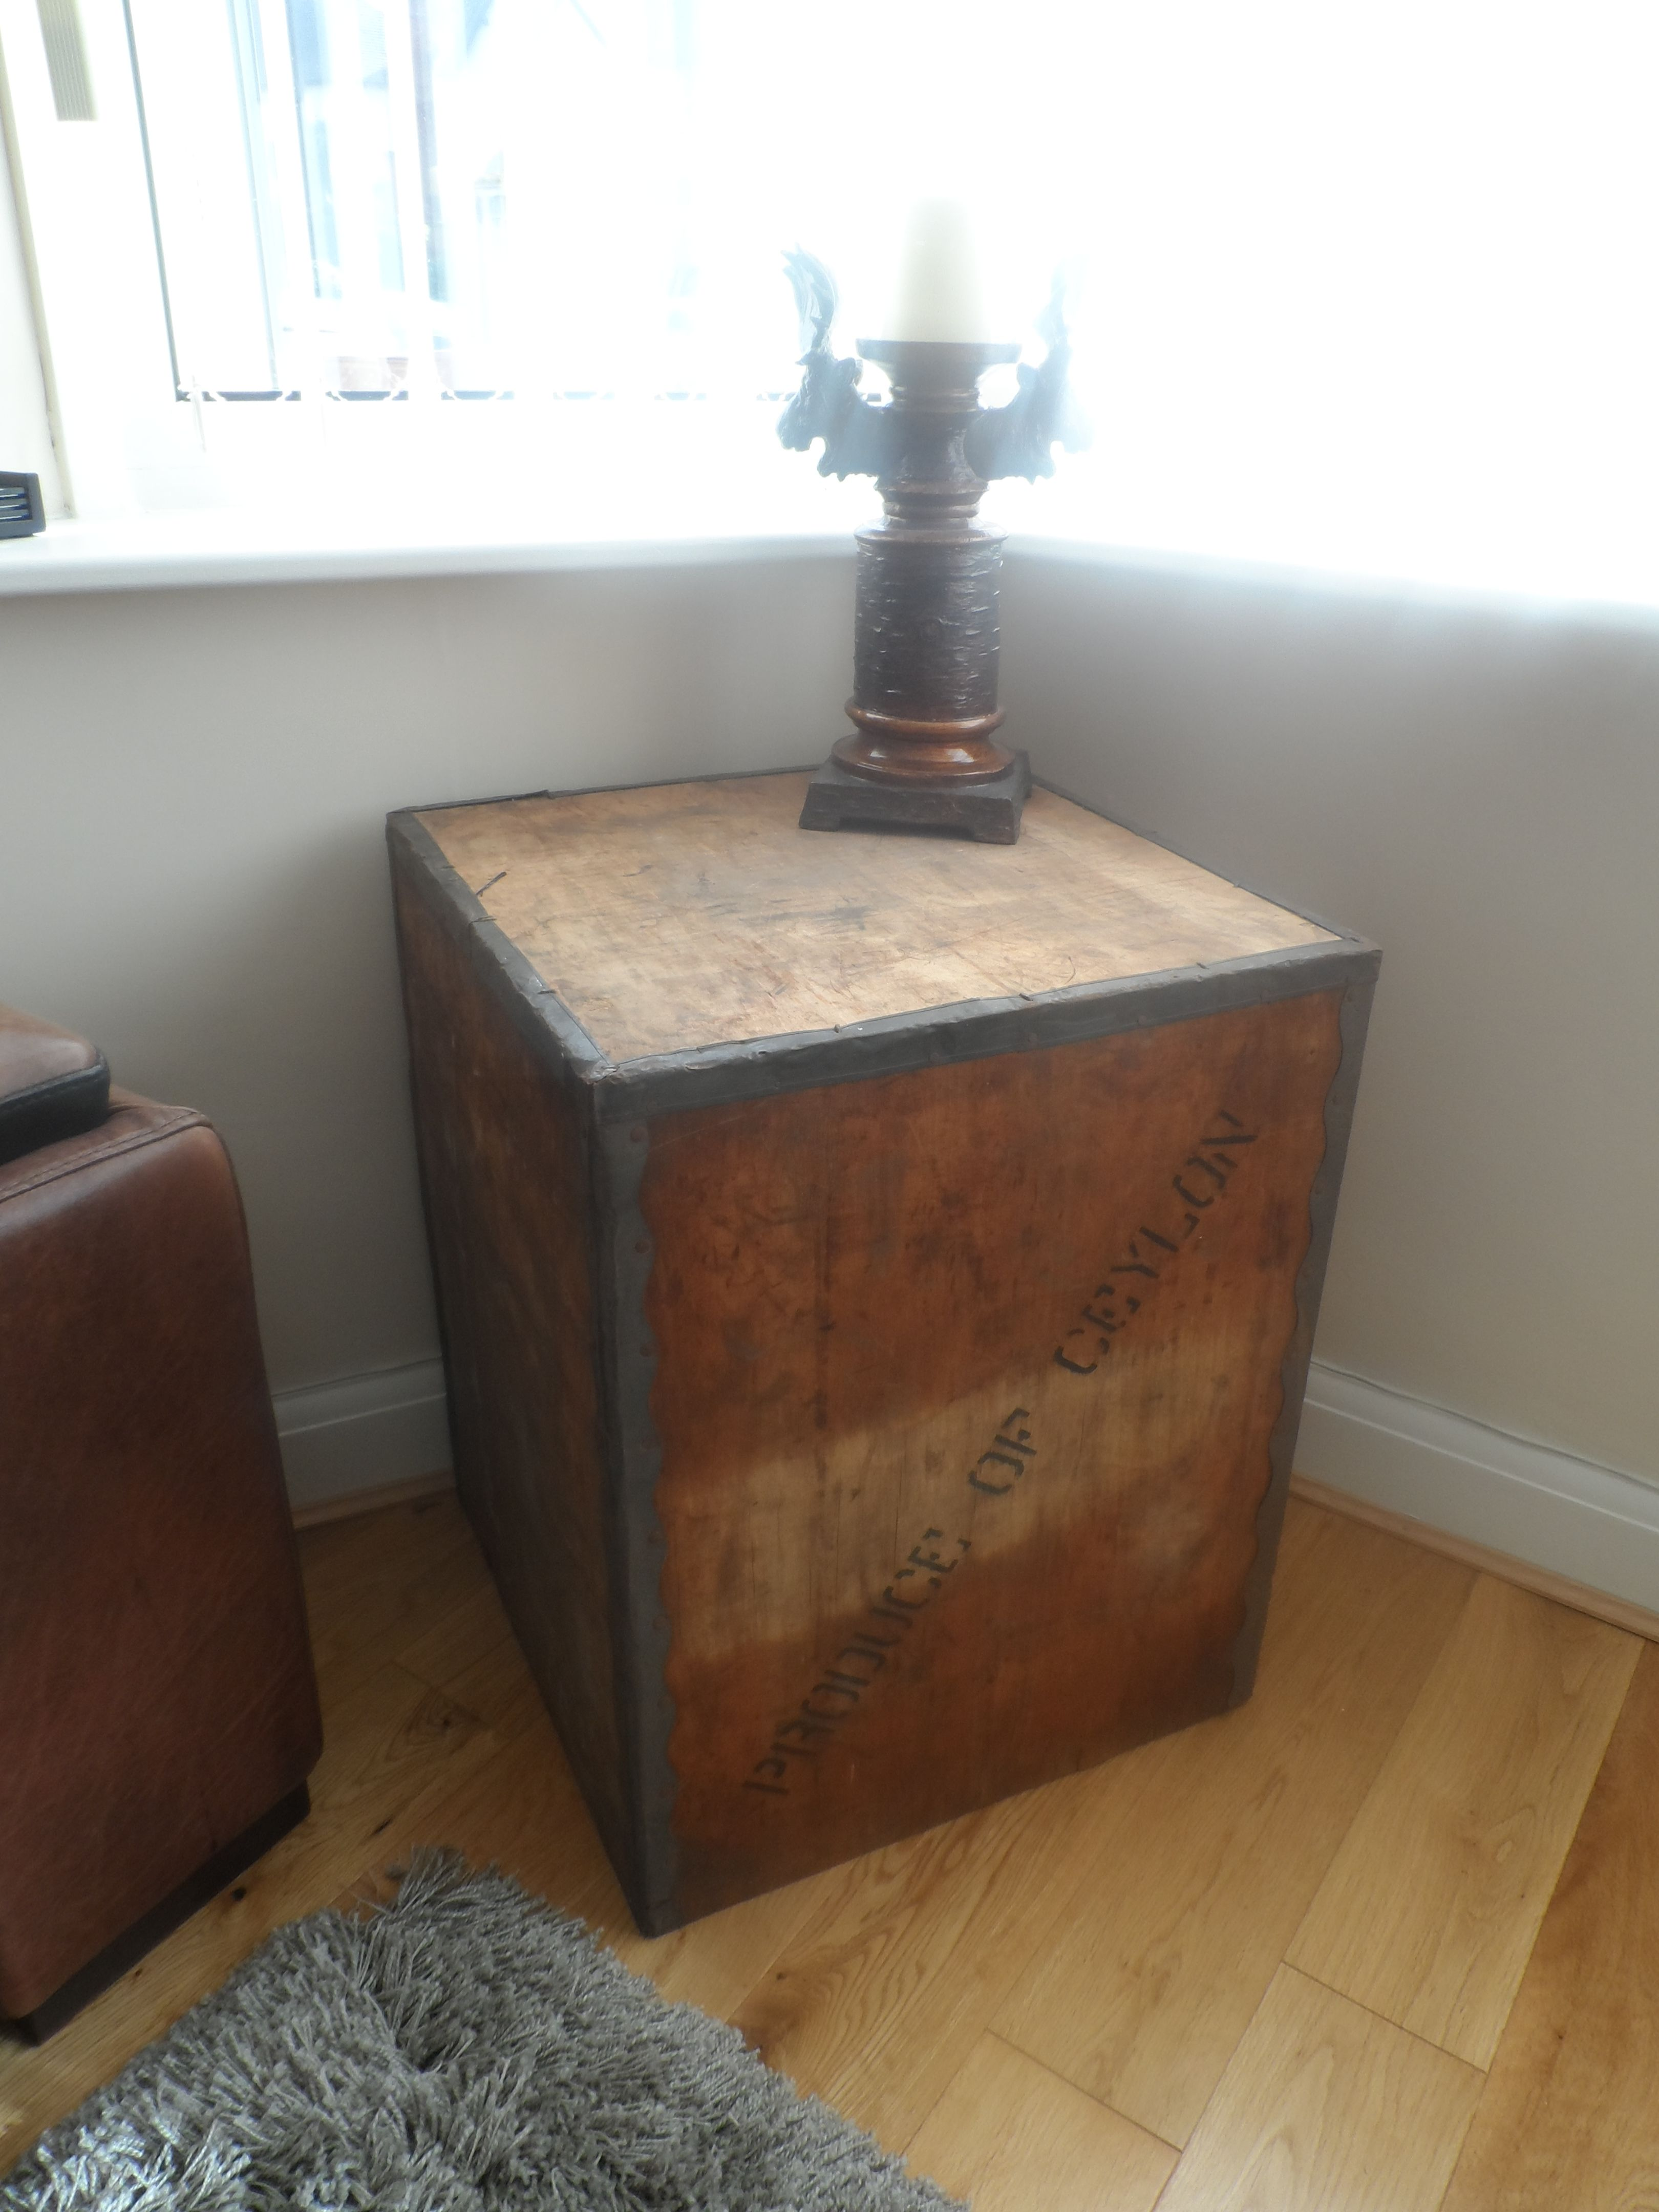 This Upside Down Box Is Something I Found In My Grandparents Loft